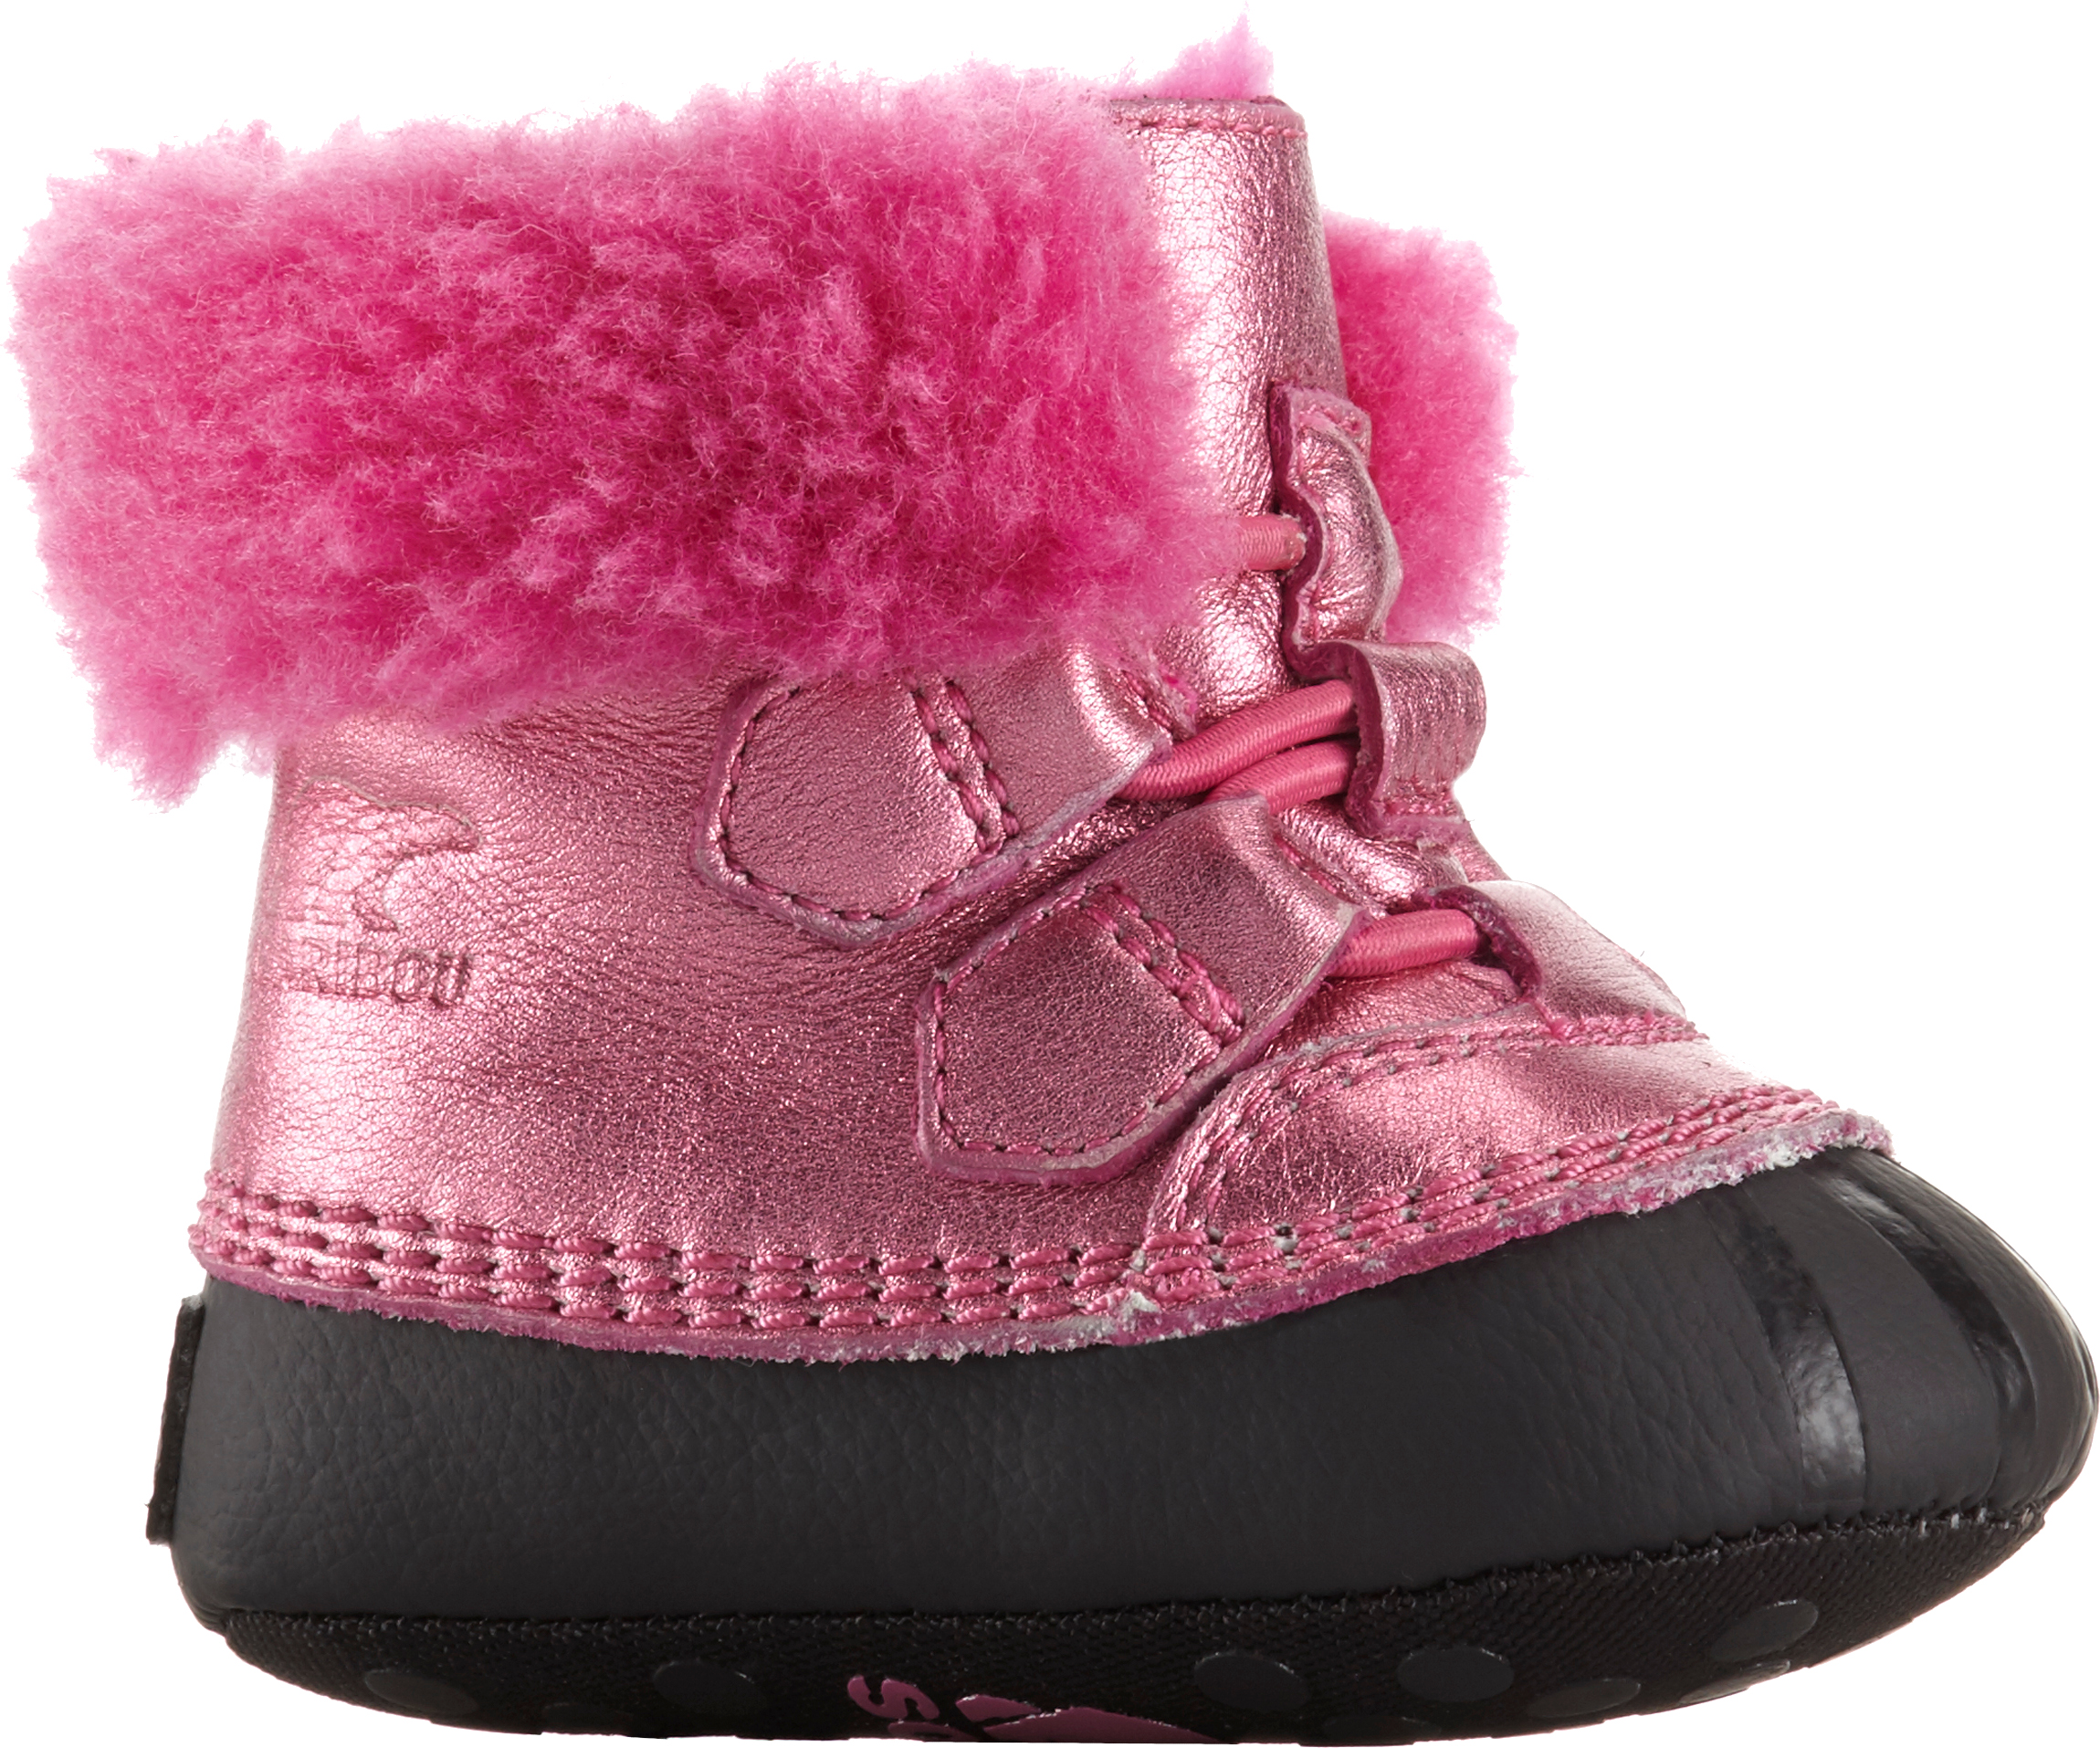 fded1f93ced4 Sorel Caribootie Leather Winter Boot - Kid s 1760581695-2